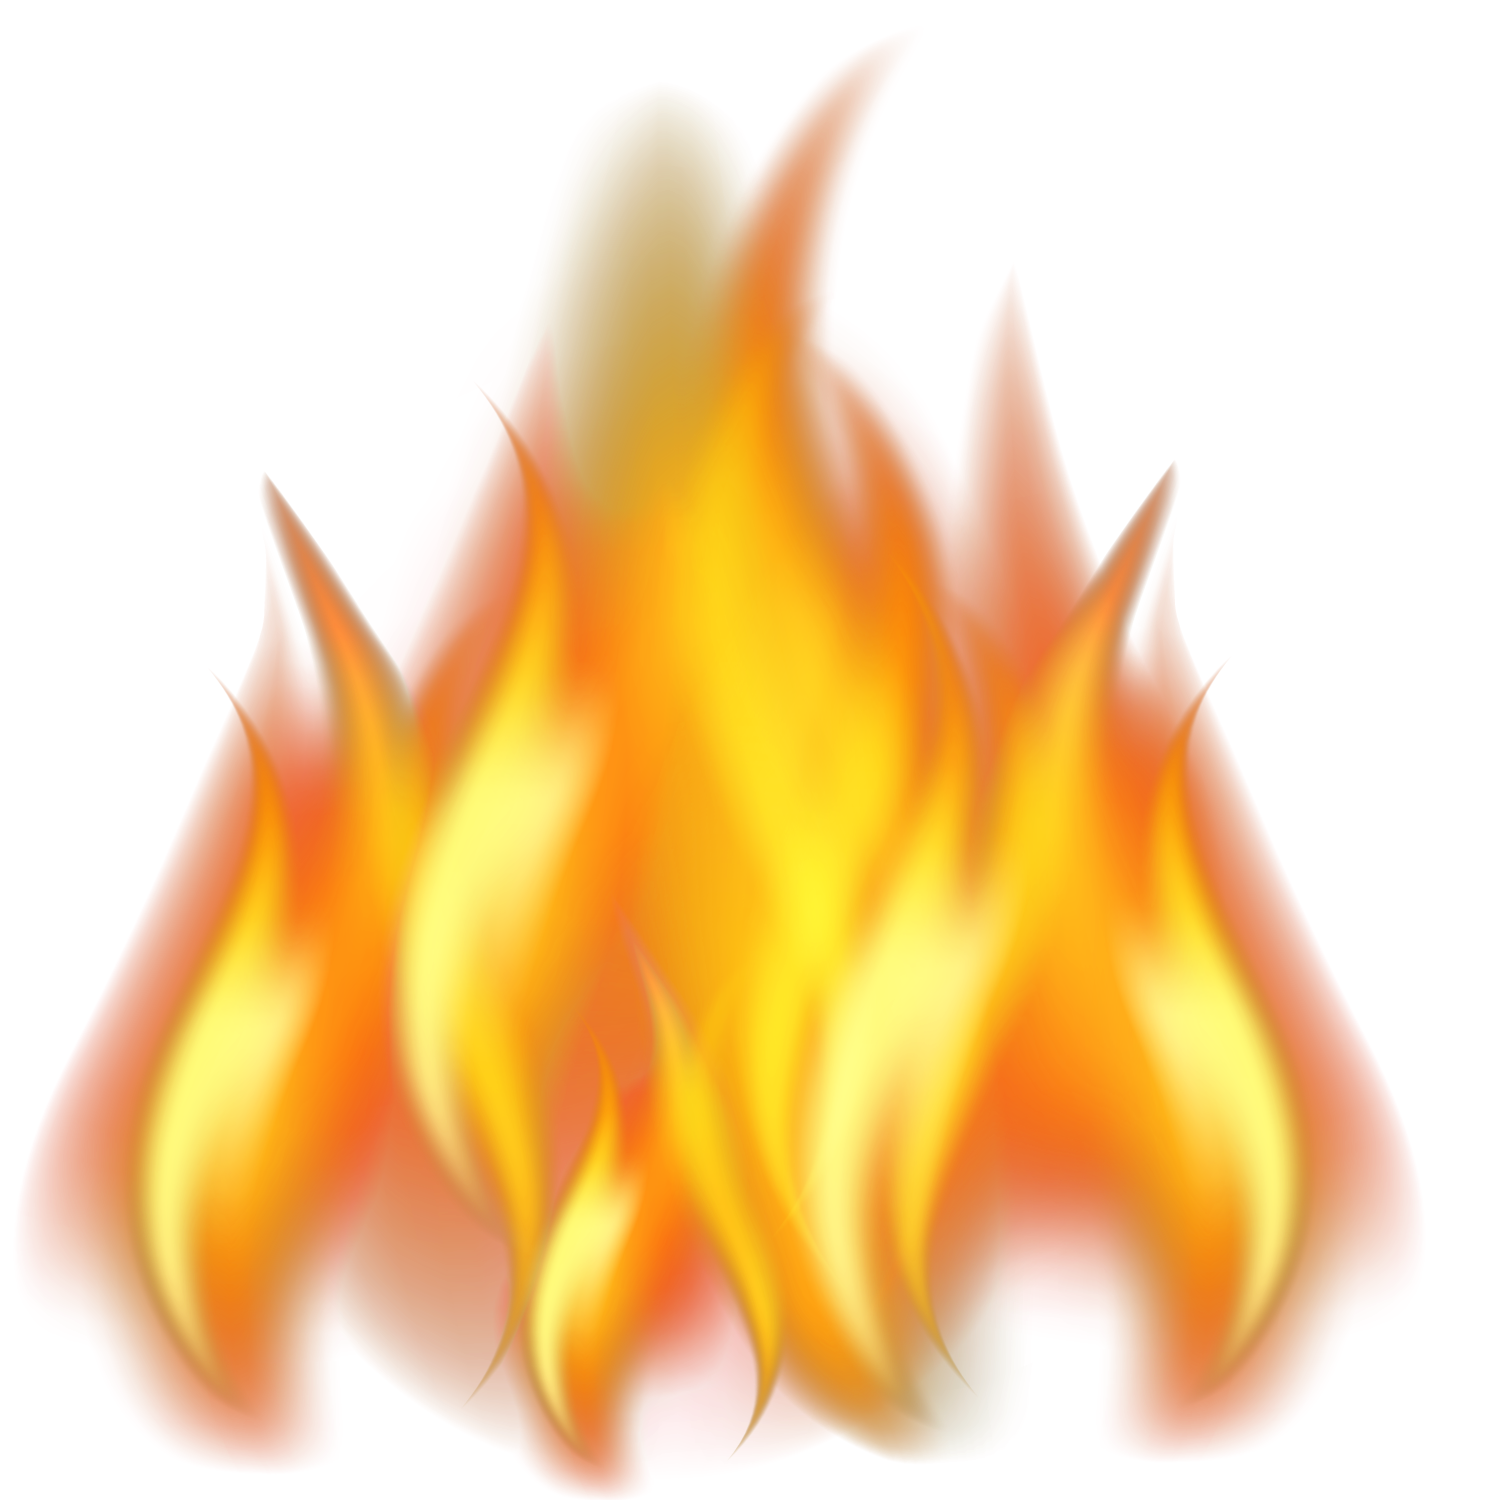 Fire vector png. Flame euclidean material transprent